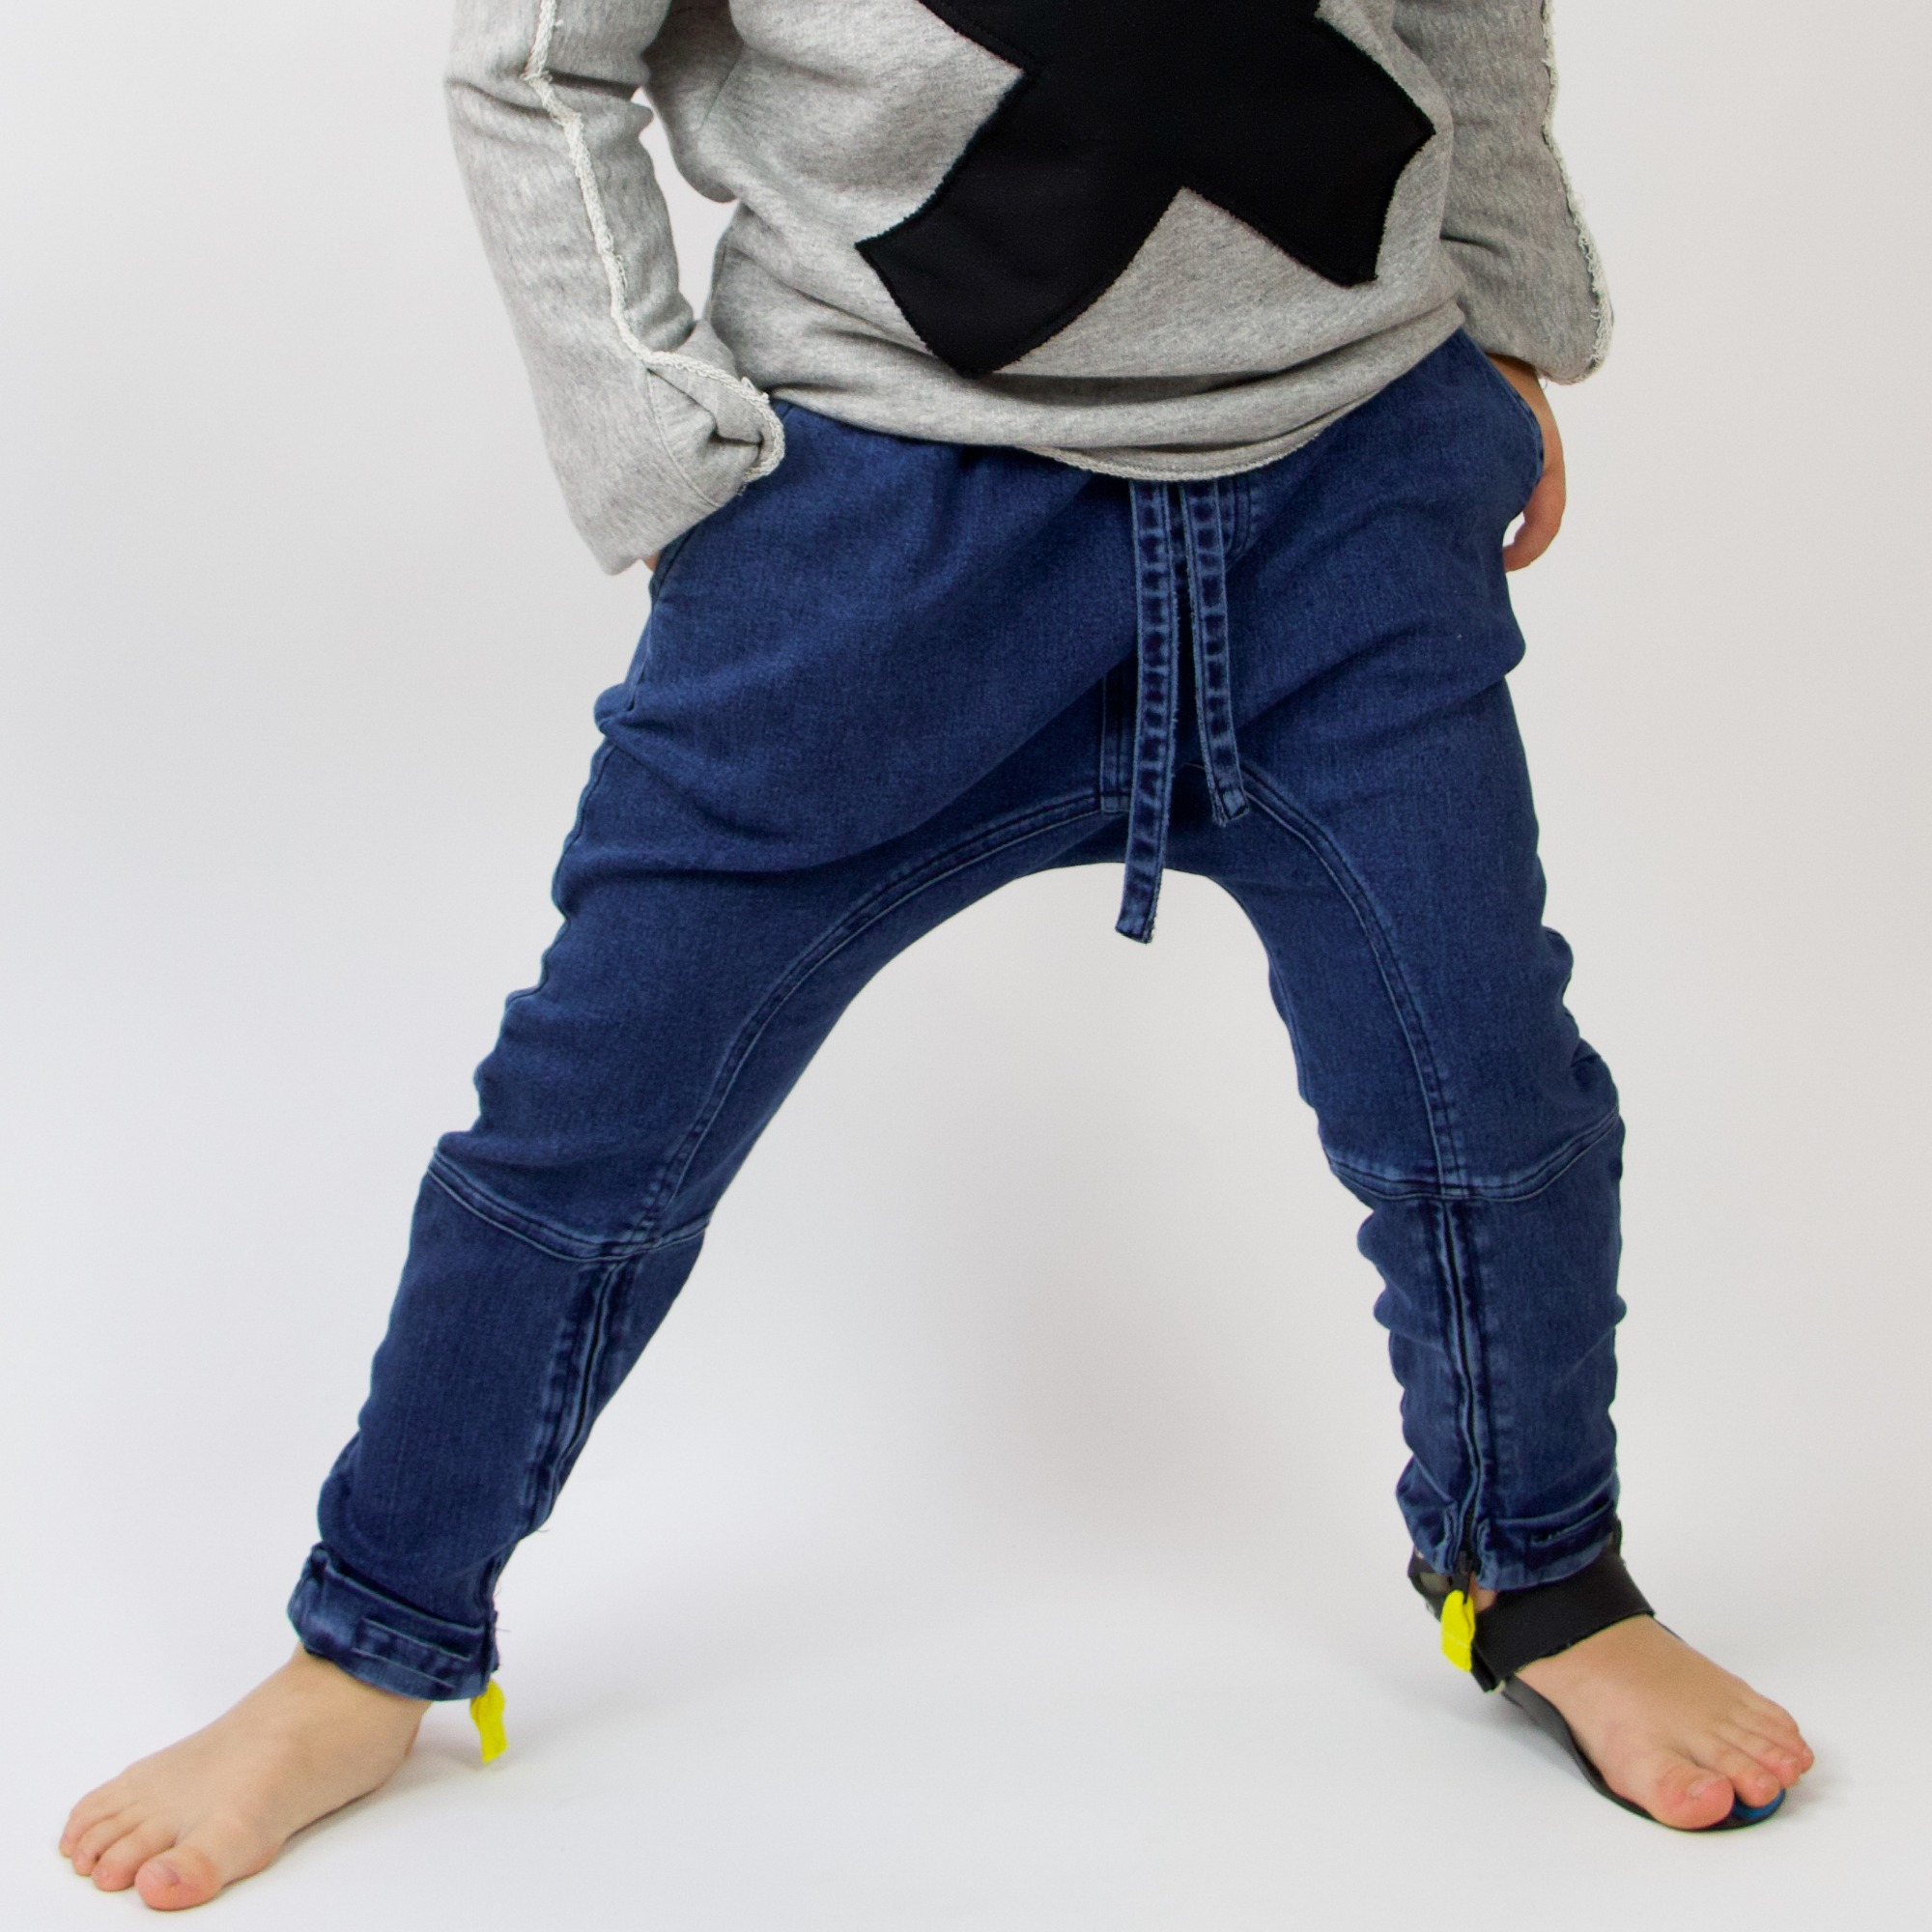 Sea Buggy Jeans